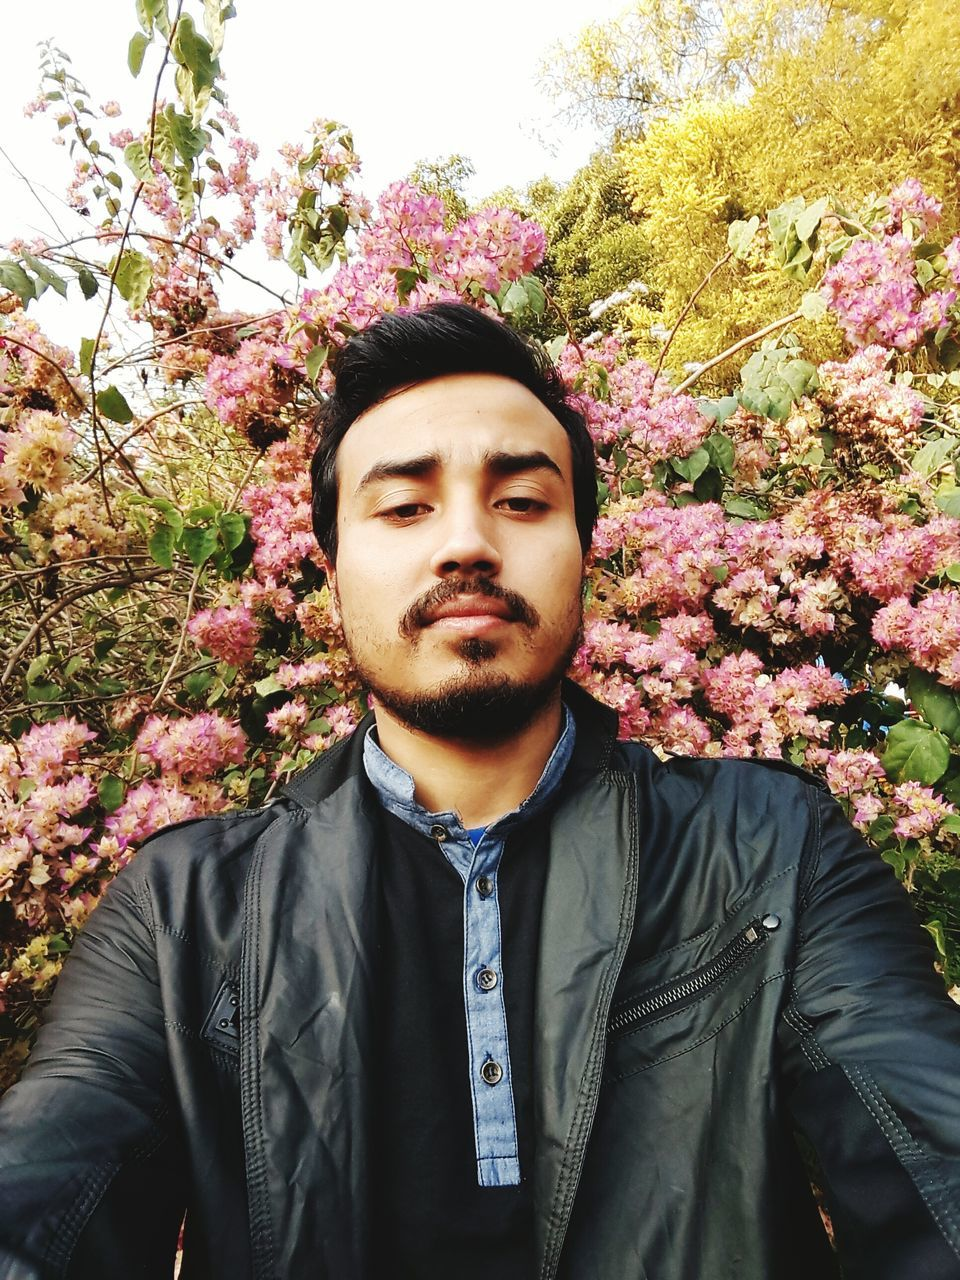 front view, real people, flower, one person, mid adult men, young adult, growth, nature, day, tree, jacket, outdoors, young men, looking at camera, leisure activity, lifestyles, plant, portrait, park - man made space, standing, beauty in nature, fragility, close-up